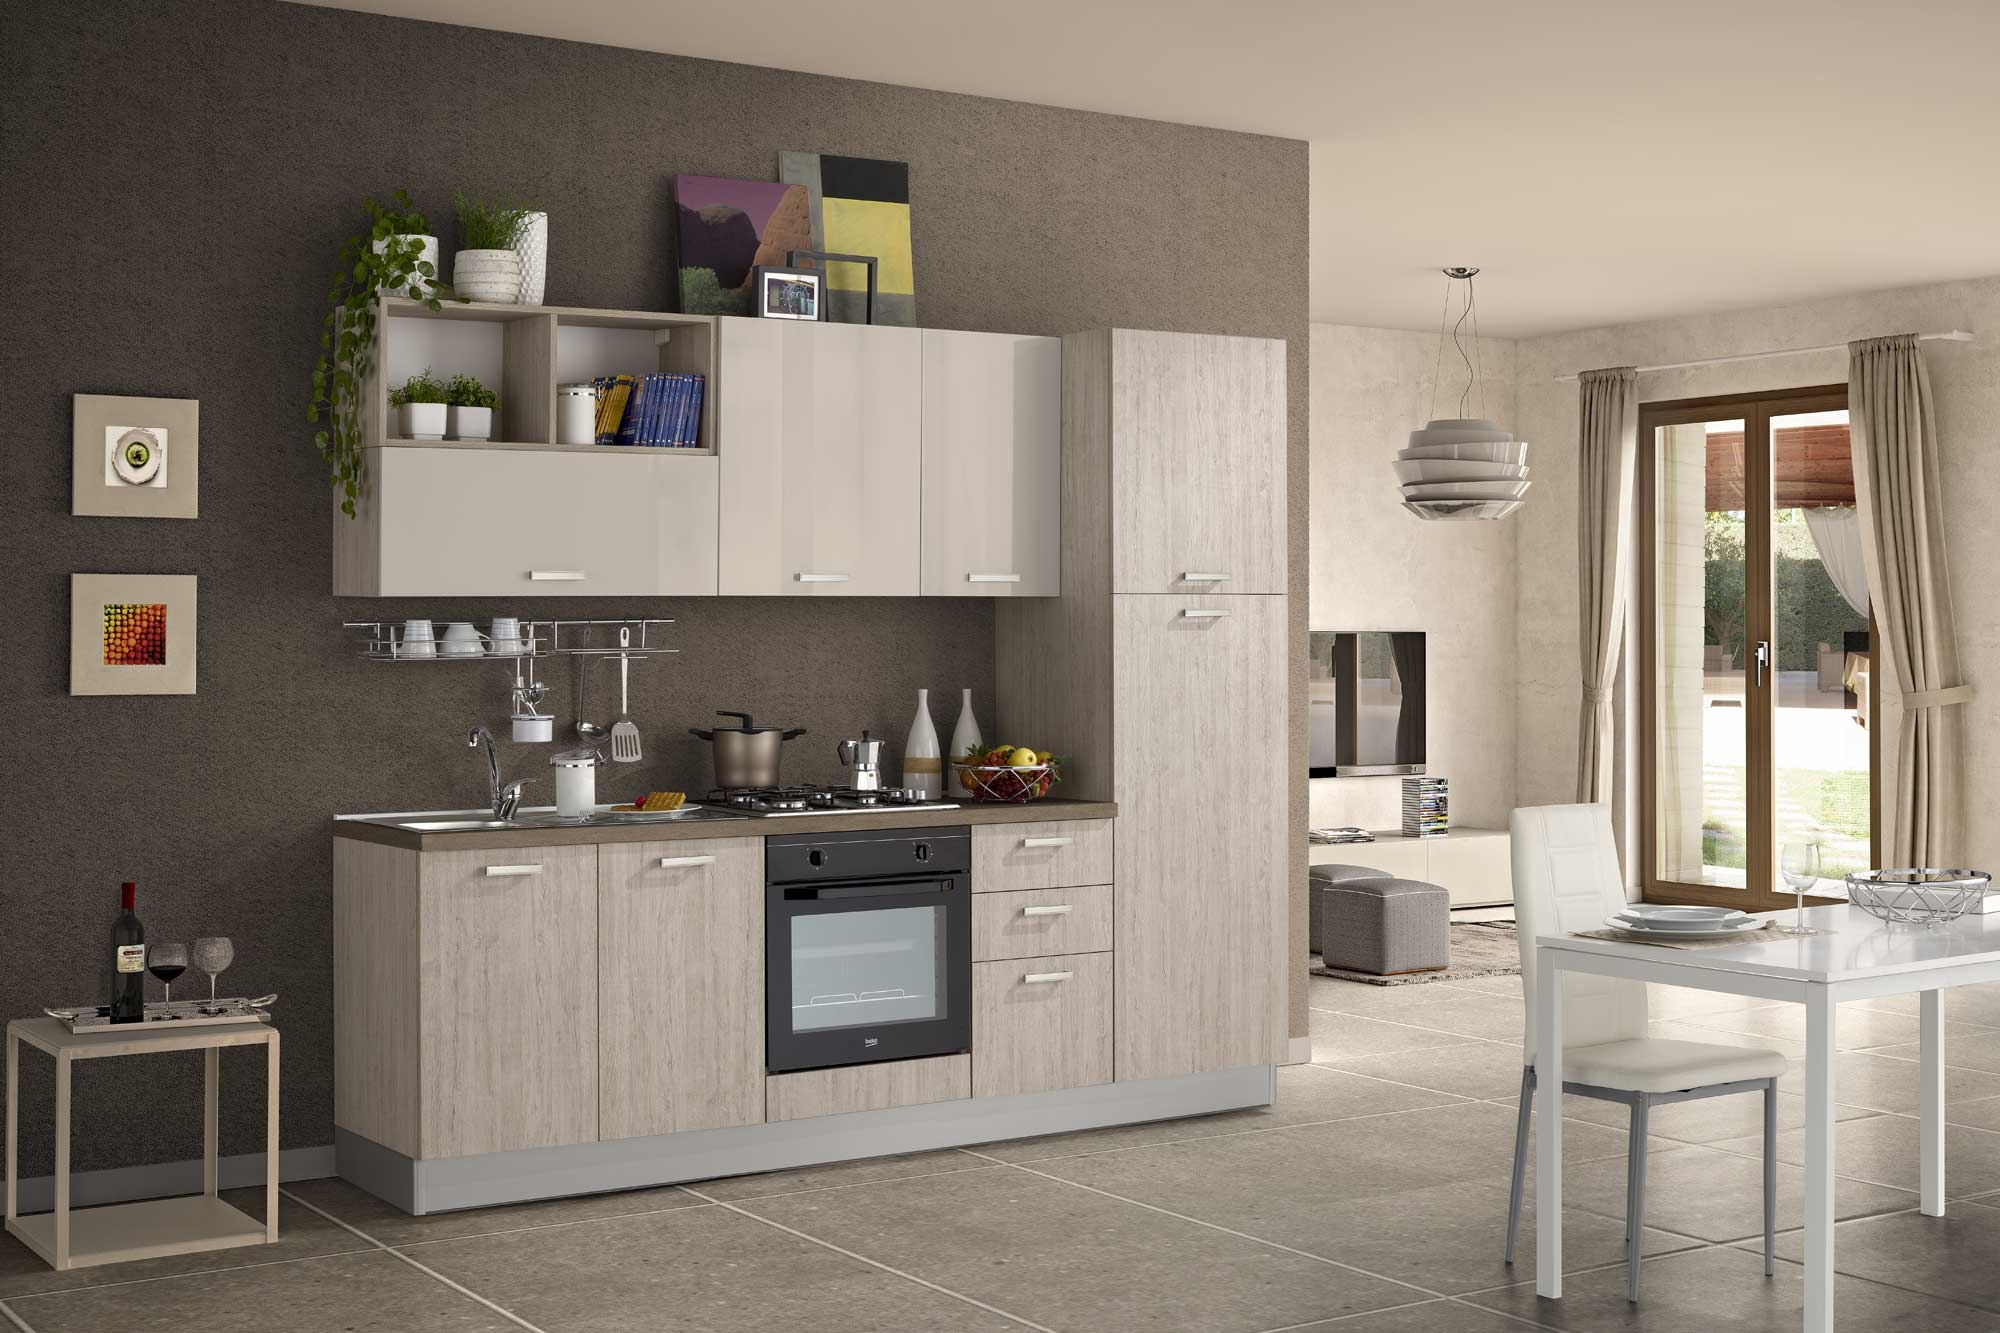 Beautiful Nuovo Arredo Cucine Catalogo Pictures - Design & Ideas ...